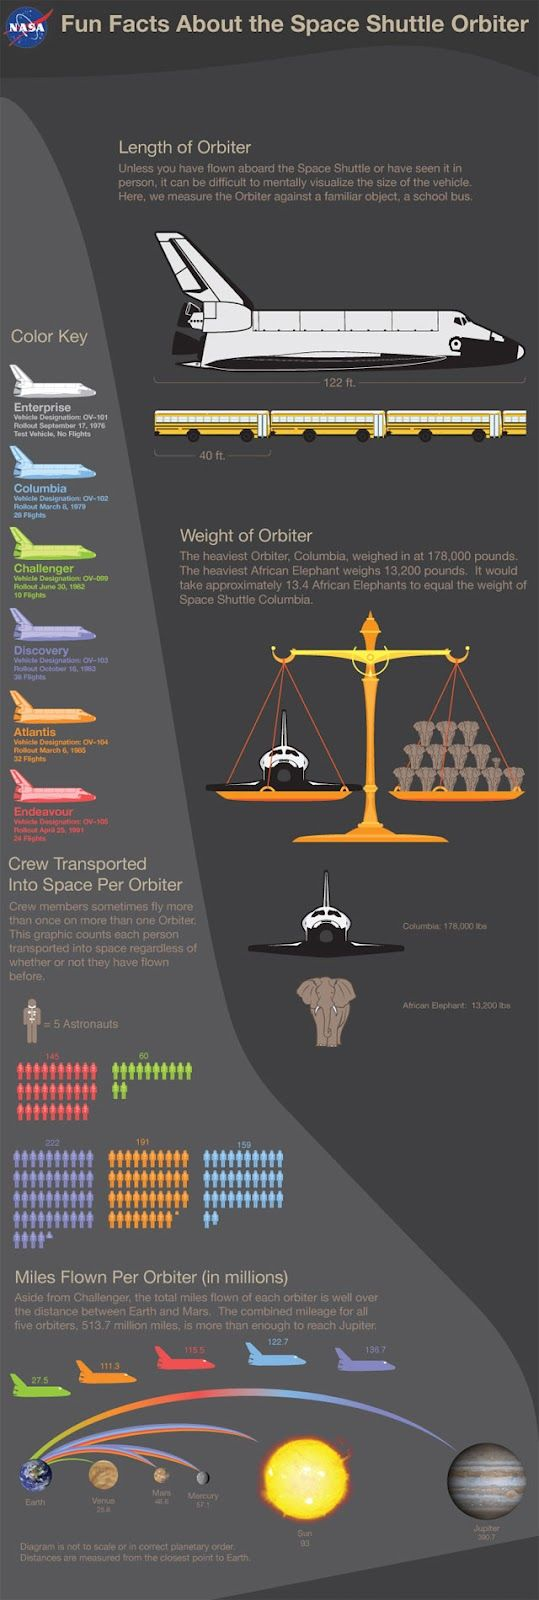 More Space Shuttle Fun Facts